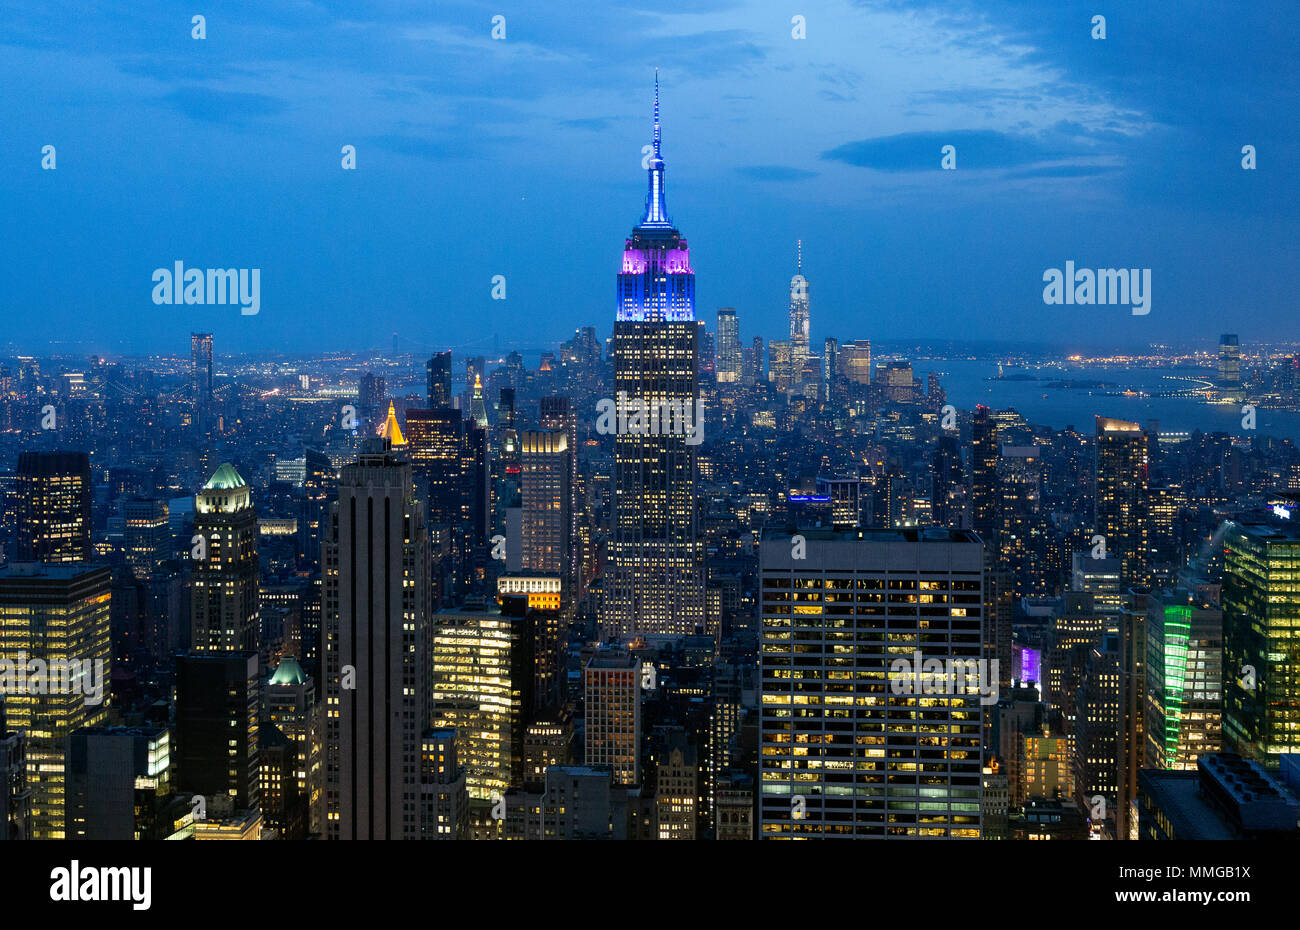 Empire State Building and New York skyline at dusk, seen from the Top of the Rock viewing platform, Manhattan, New York city, United States of America - Stock Image